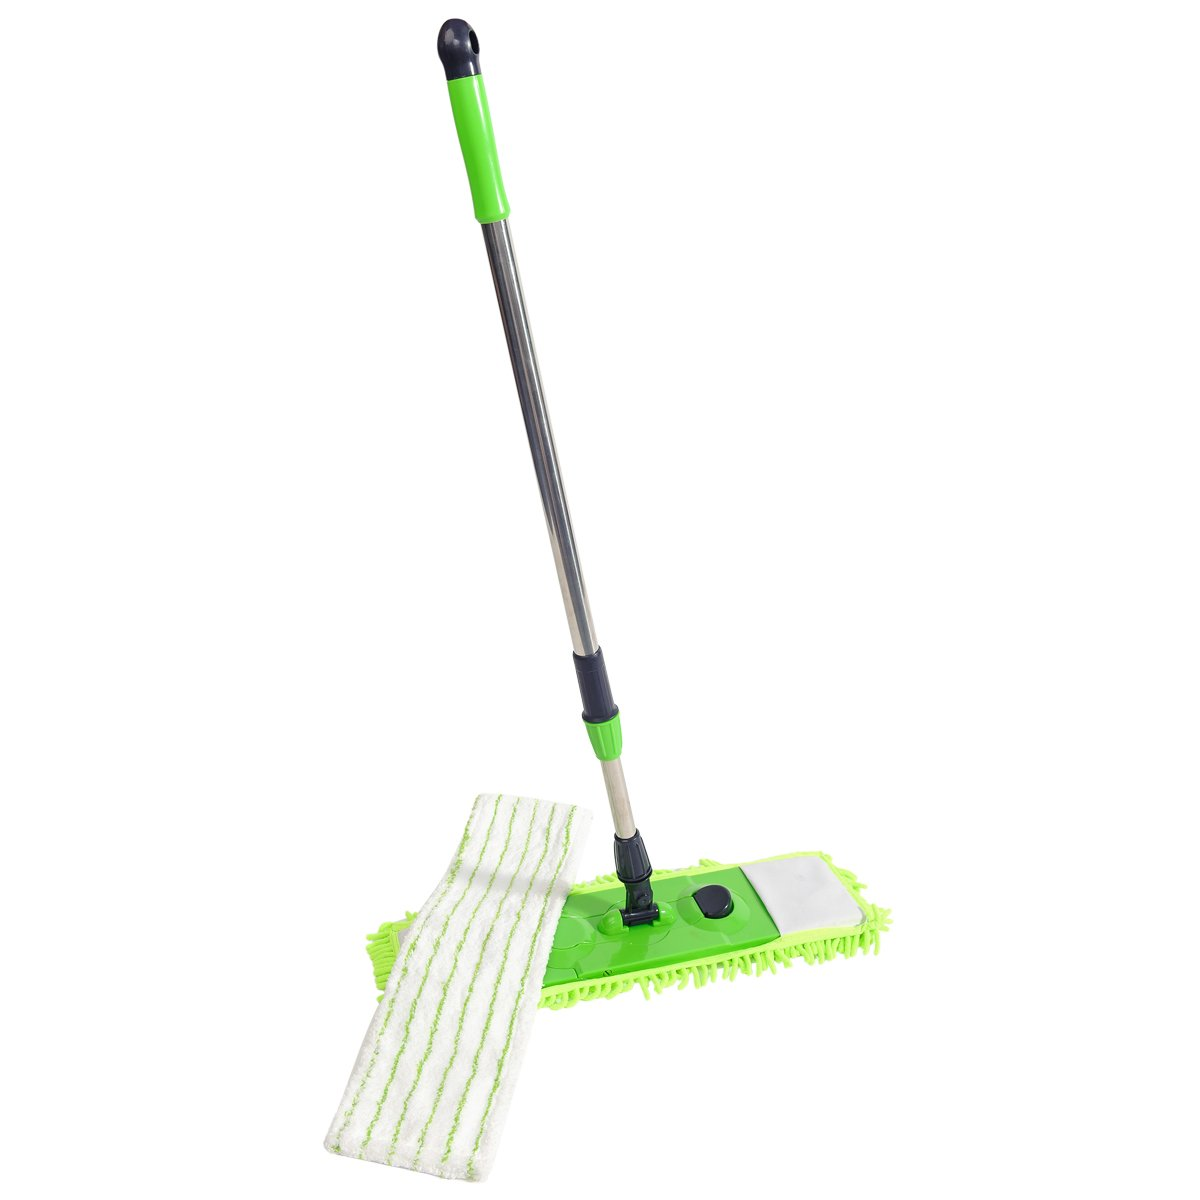 NFHOME 24'' Flip Floor Mop, Professional Microfiber Flat Mop With Telescopic Pole Height Max 50'' and 1 Extra Chenille Flip Mop Refill for Hardwood, Laminate and Tile Flooring, Green